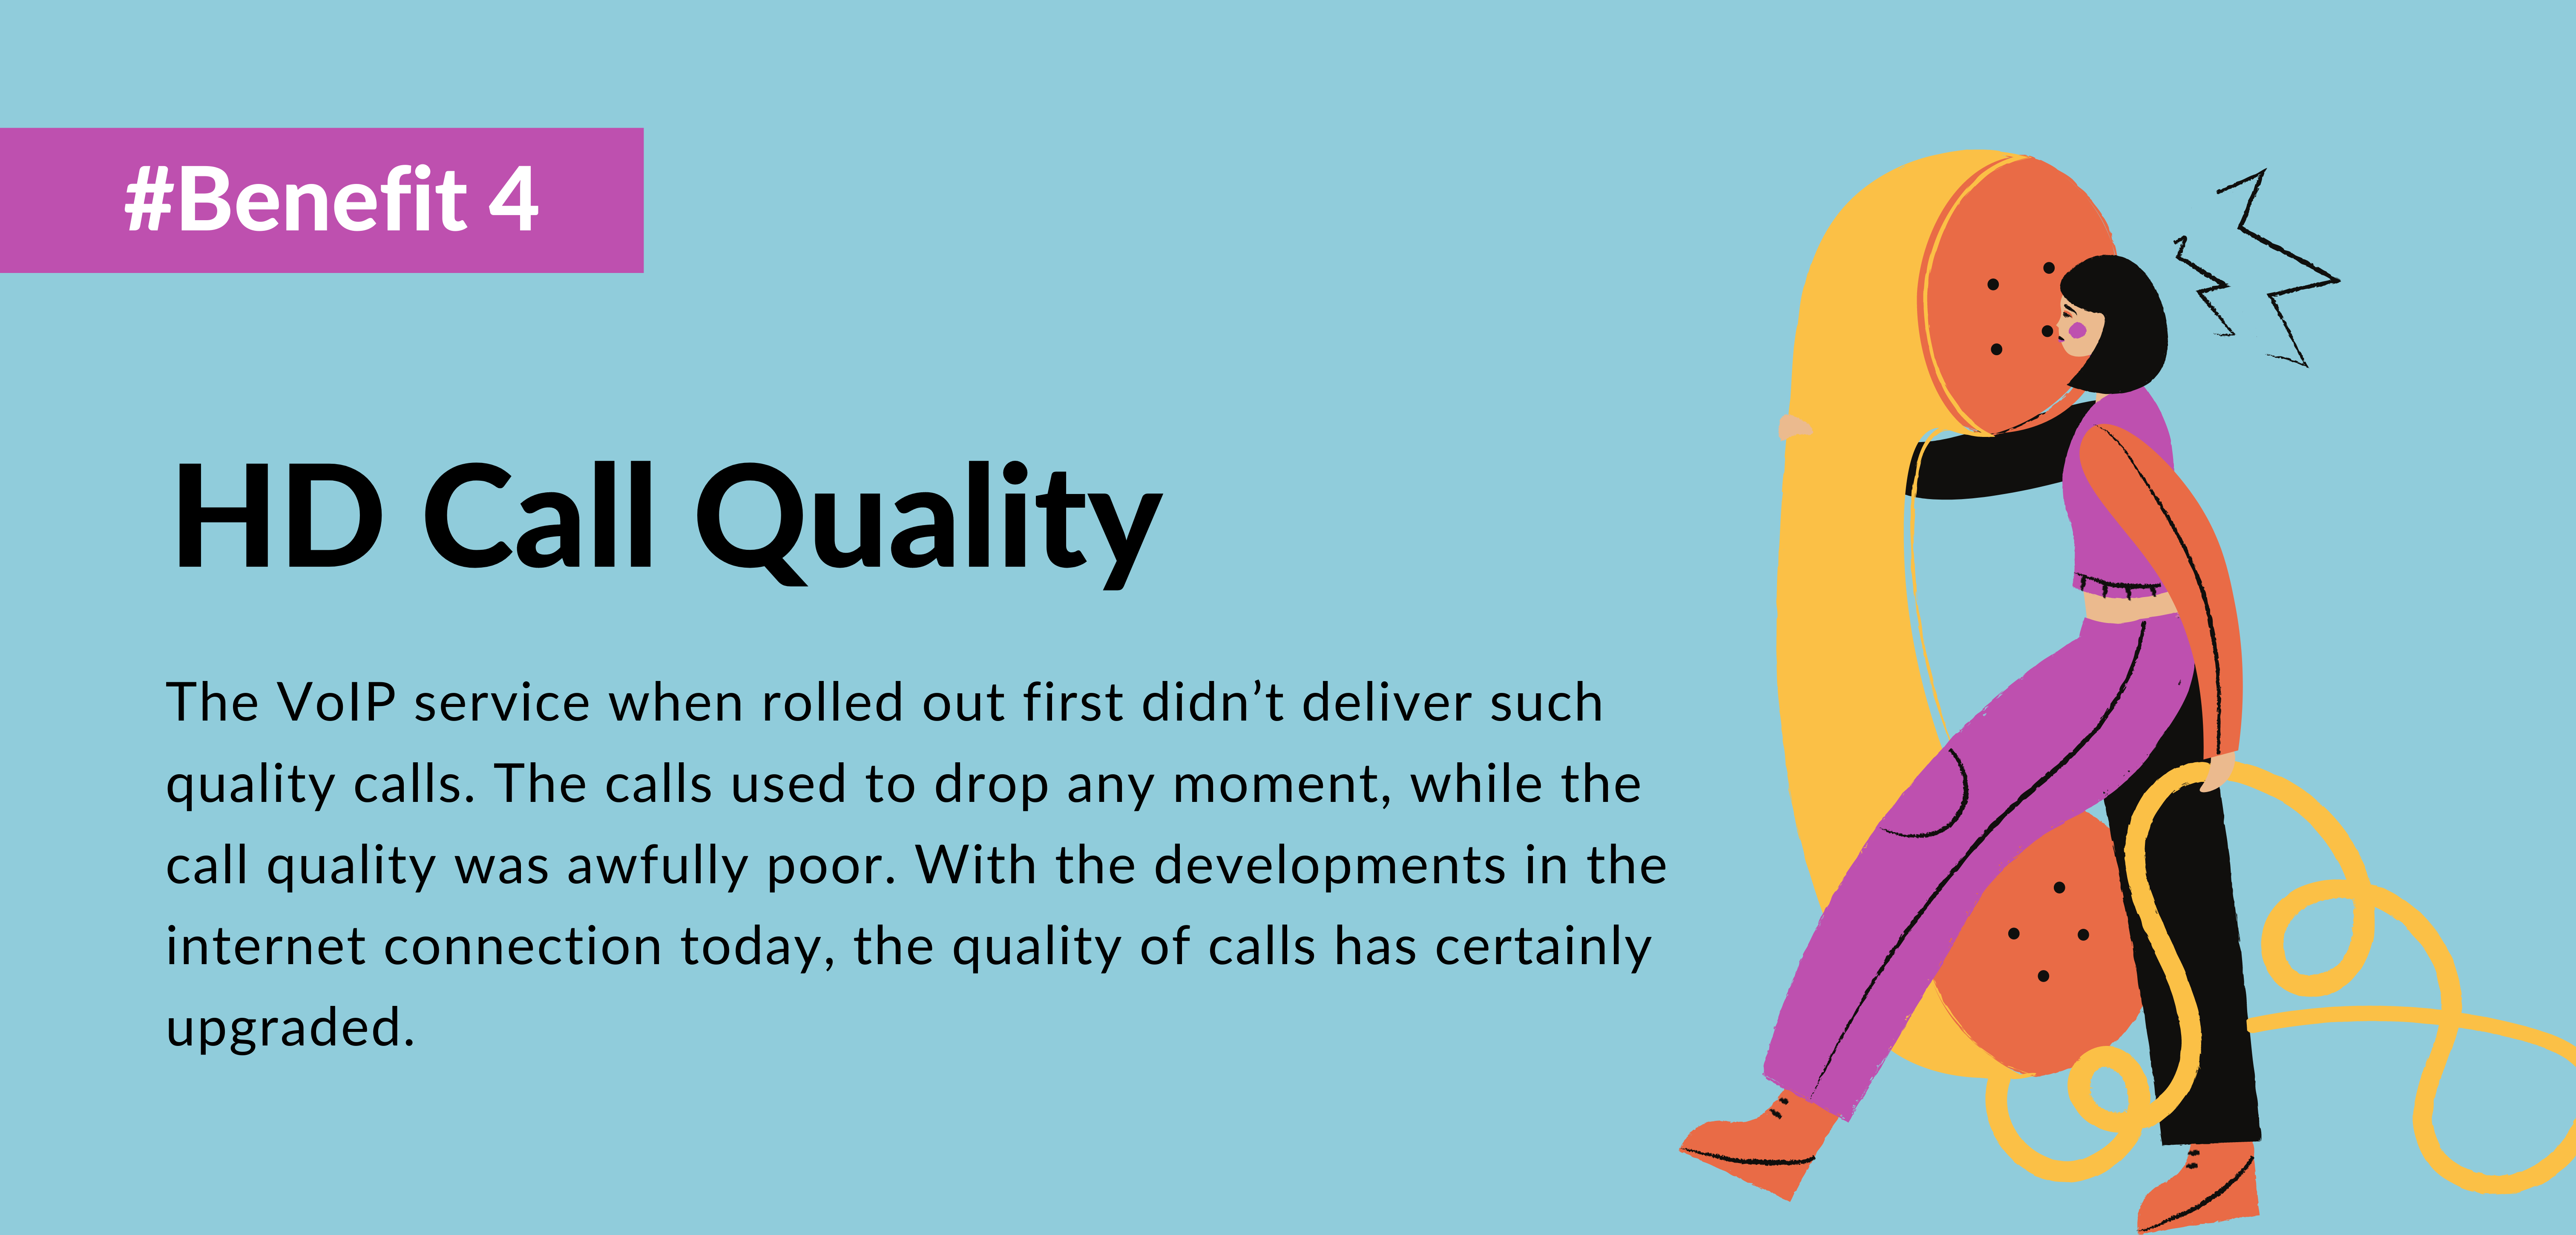 fourth benefit of using voip is hd call quality- telecloud